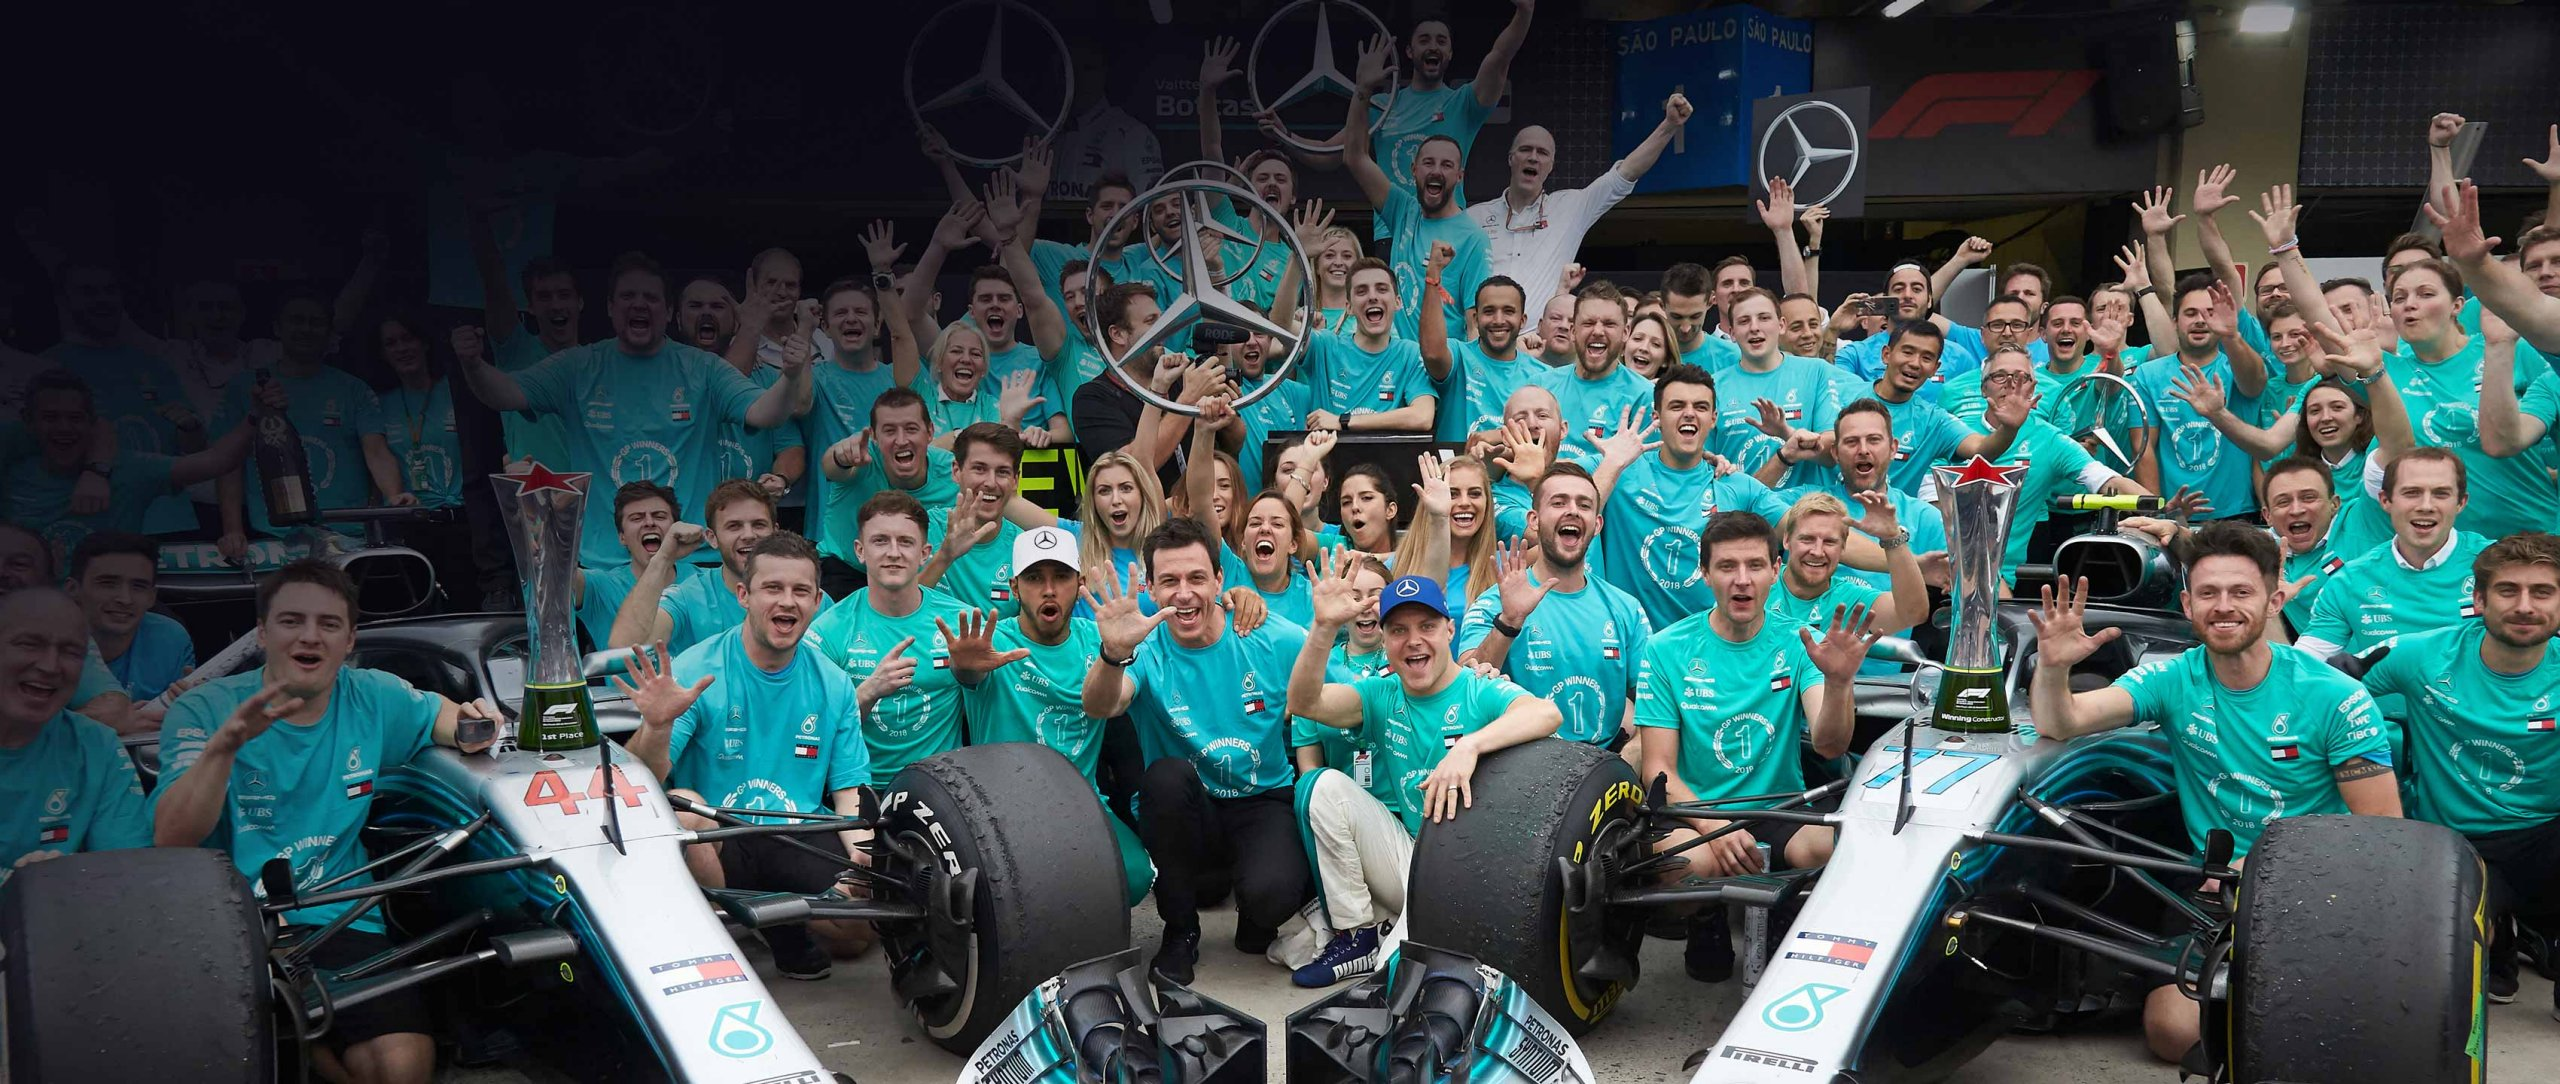 The best team once again: in 2018, MERCEDES AMG PETRONAS Motorsport wins the FIA Formula 1 Constructors' World Championship for the fifth time in a row.